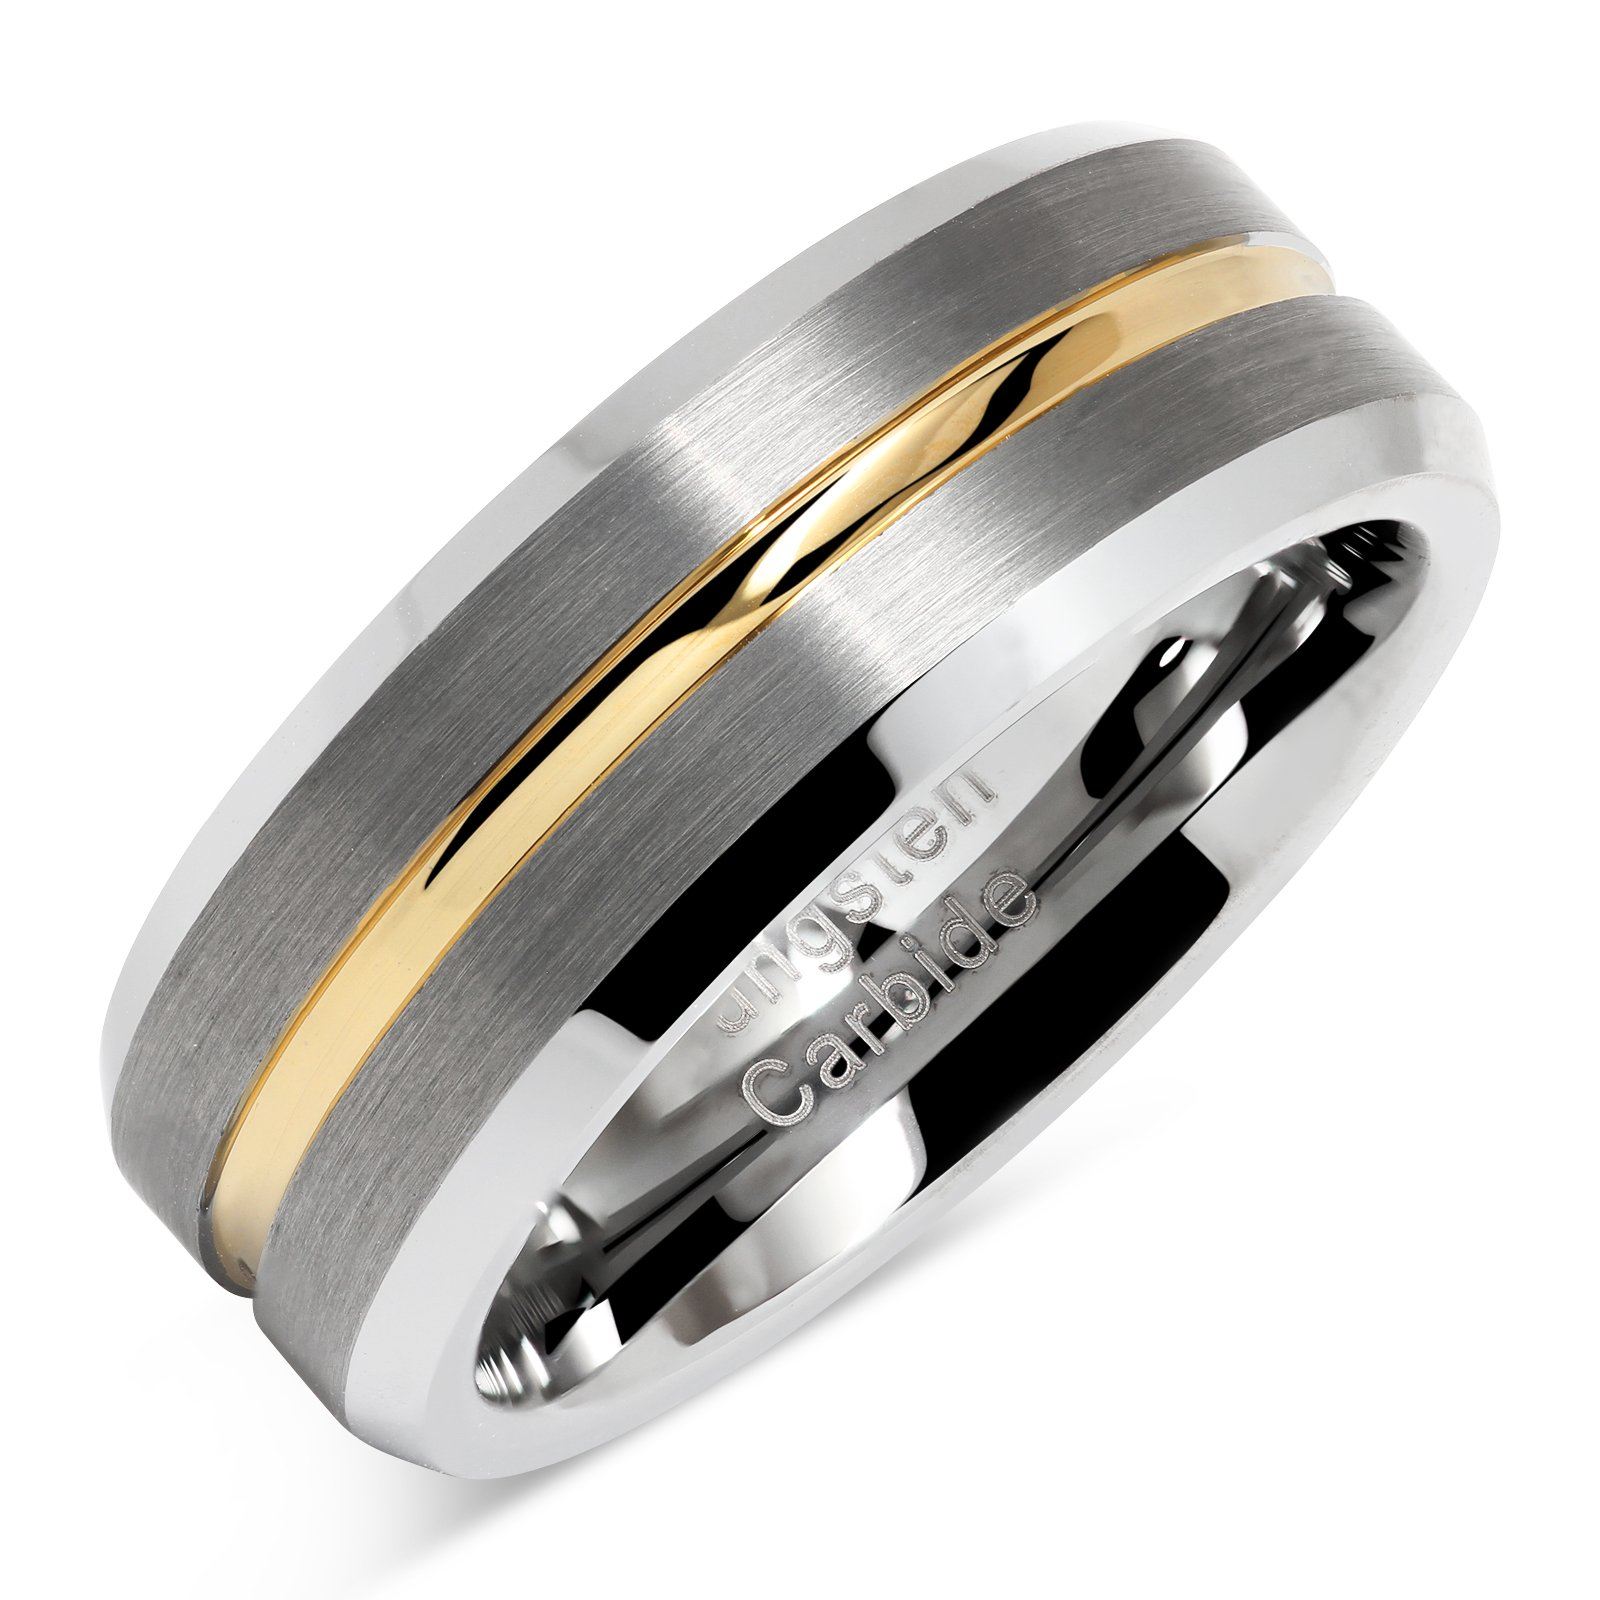 100S JEWELRY Tungsten Rings for Men Two Tone Silver Wedding Bands Gold Grooved Matte Finish Size 8-16 (10)